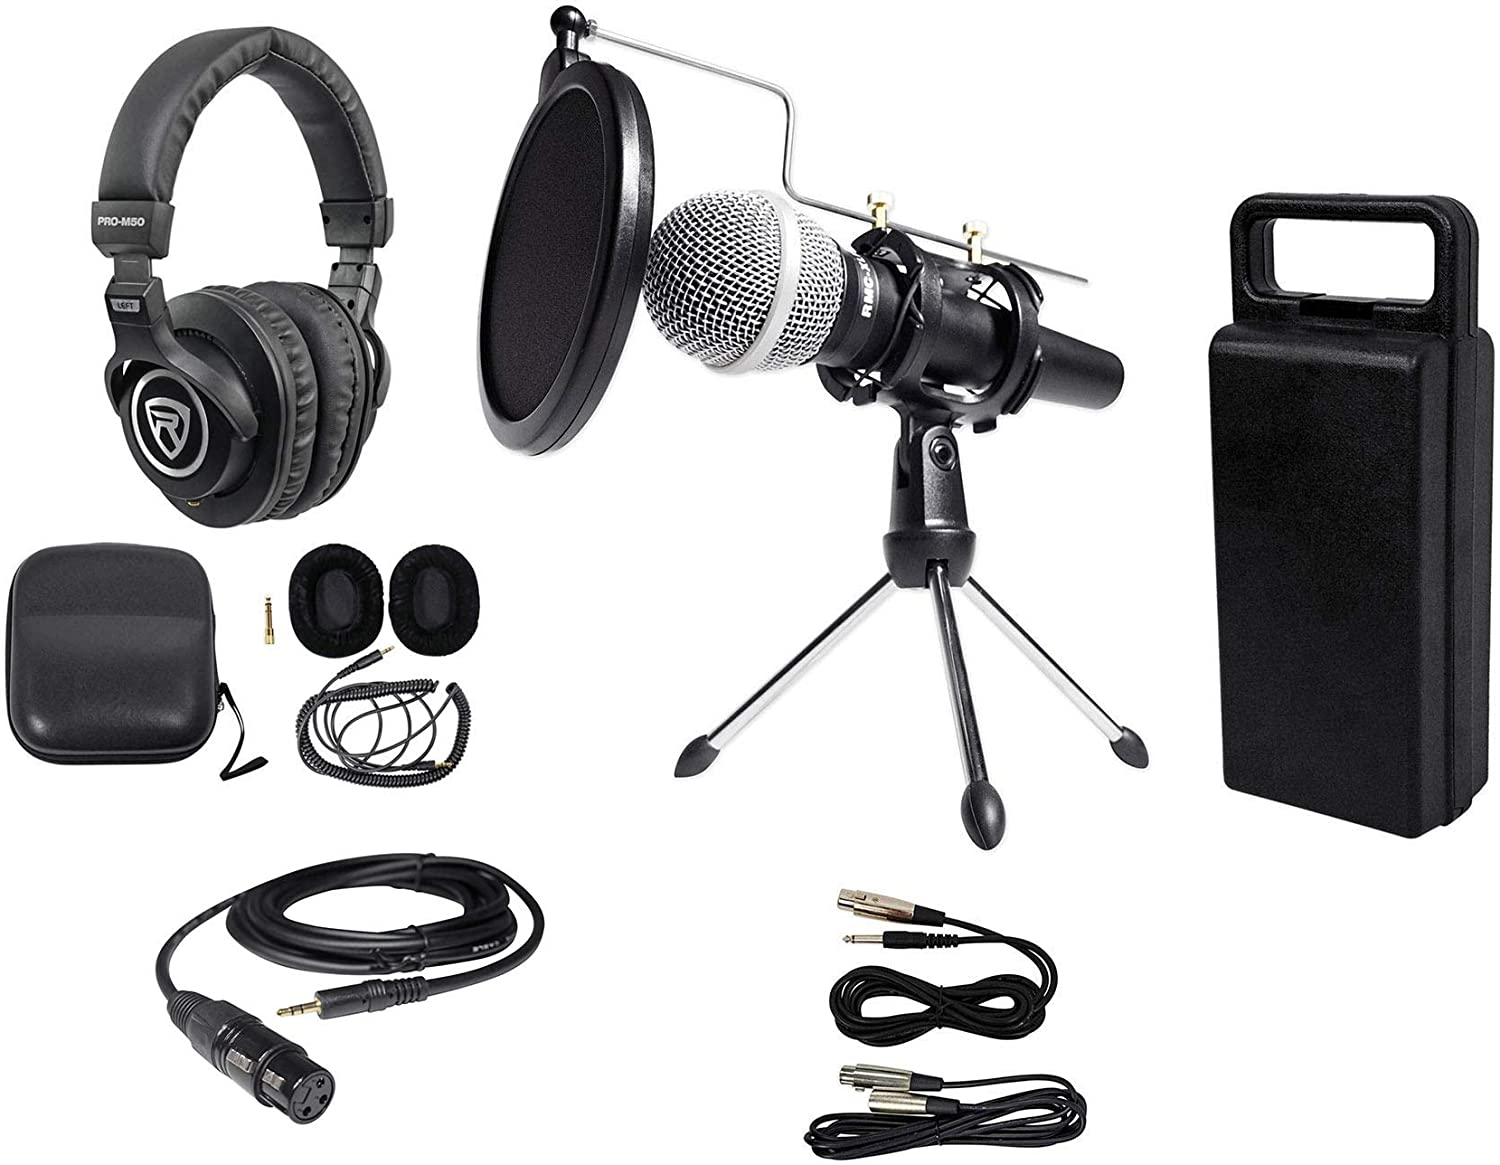 Rockville PC Podcasting Podcast Streaming Bundle w/Microphone+Stand+Headphones